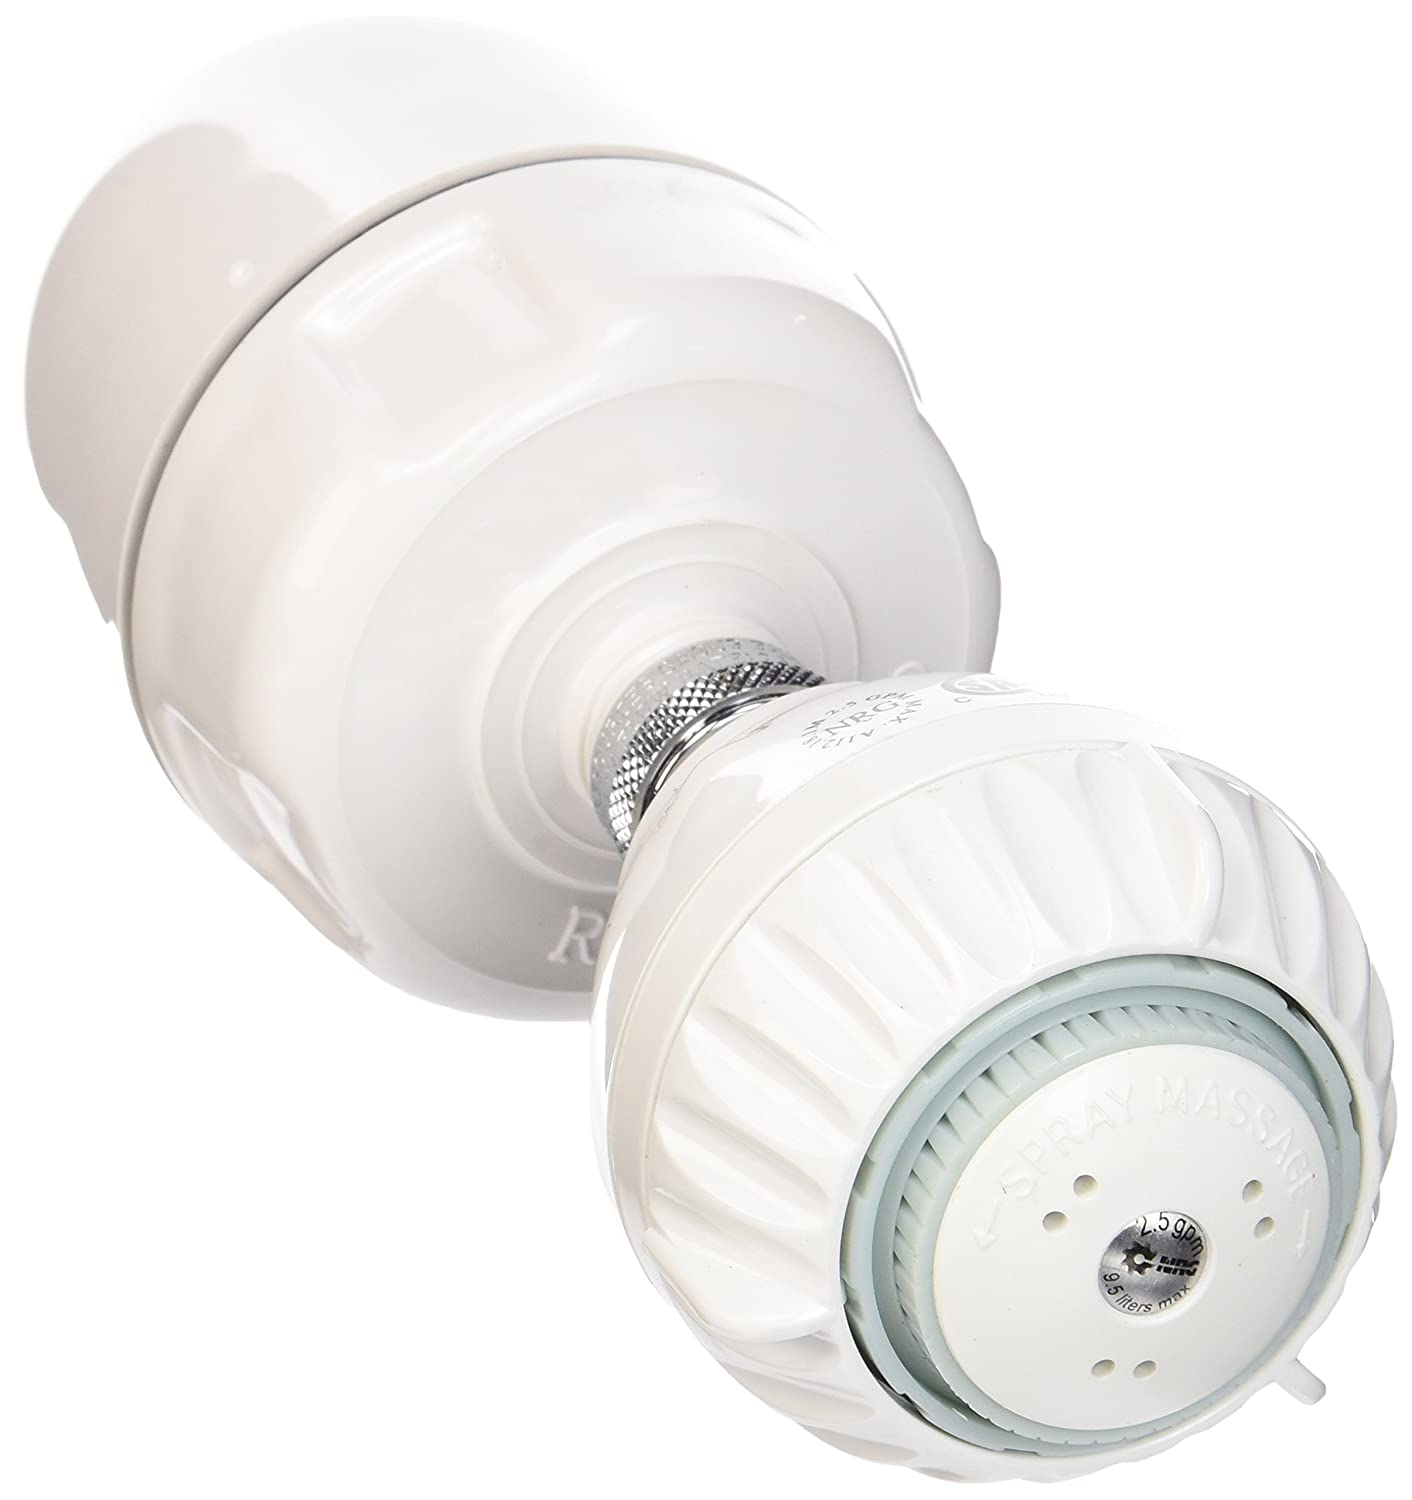 the cq1000ms shower filter gets the 1 spot see the exact price here